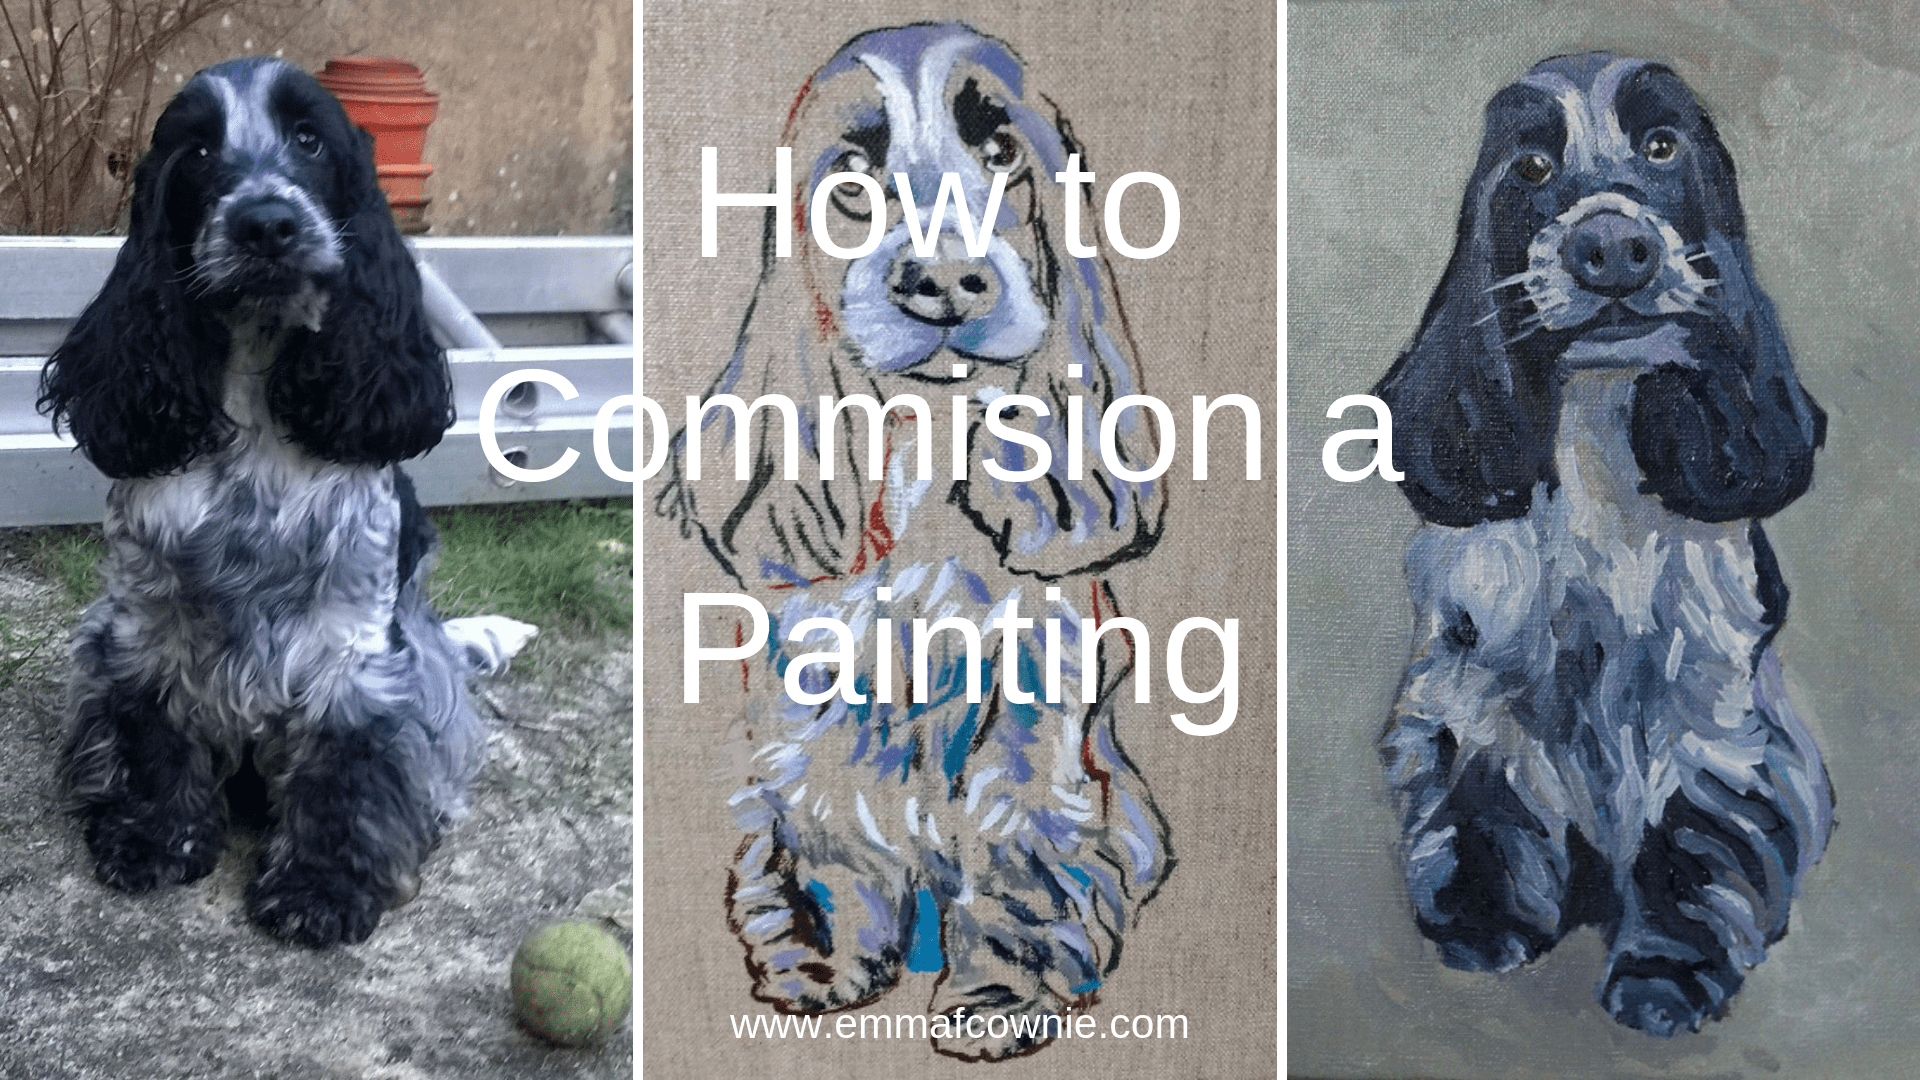 How to commission a painting